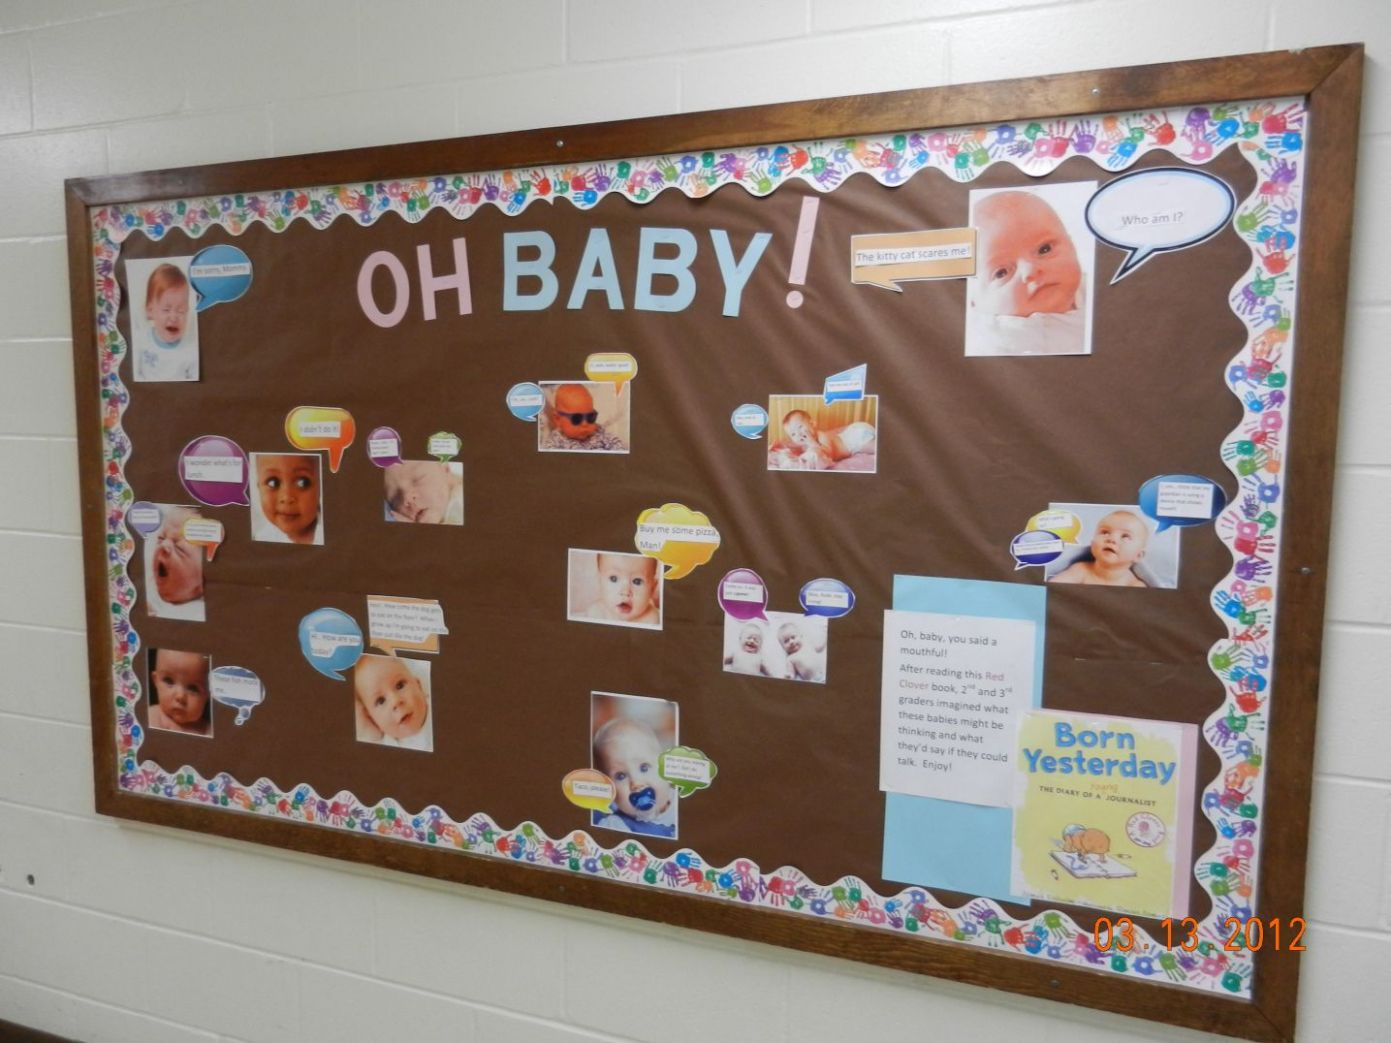 8+ Baby Room Display Board Ideas - Best Spray Paint for Wood ..